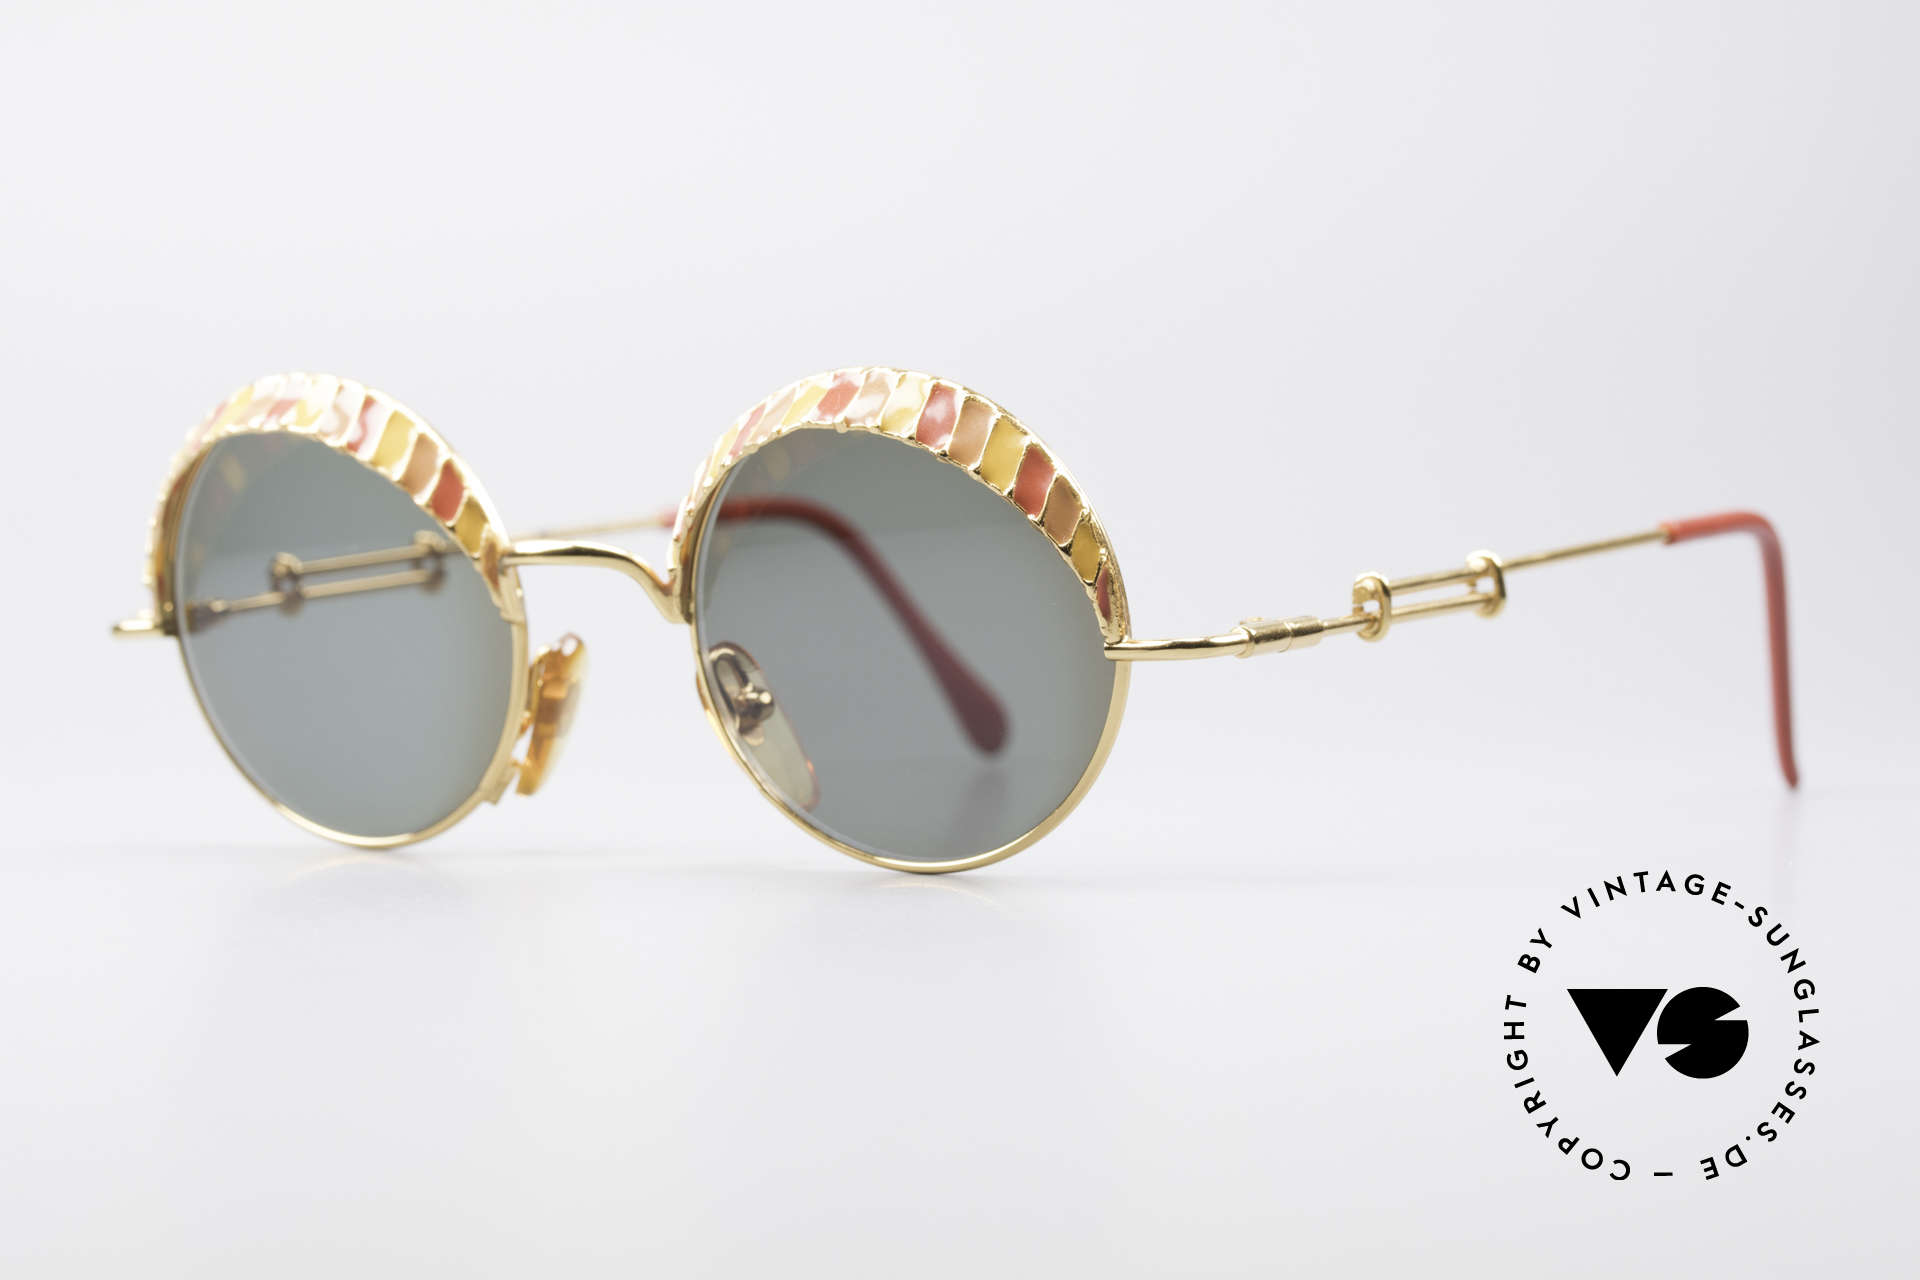 Casanova Arché 4 Limited Gold Plated Frame, Arché Series = most precious creations by CASANOVA, Made for Men and Women